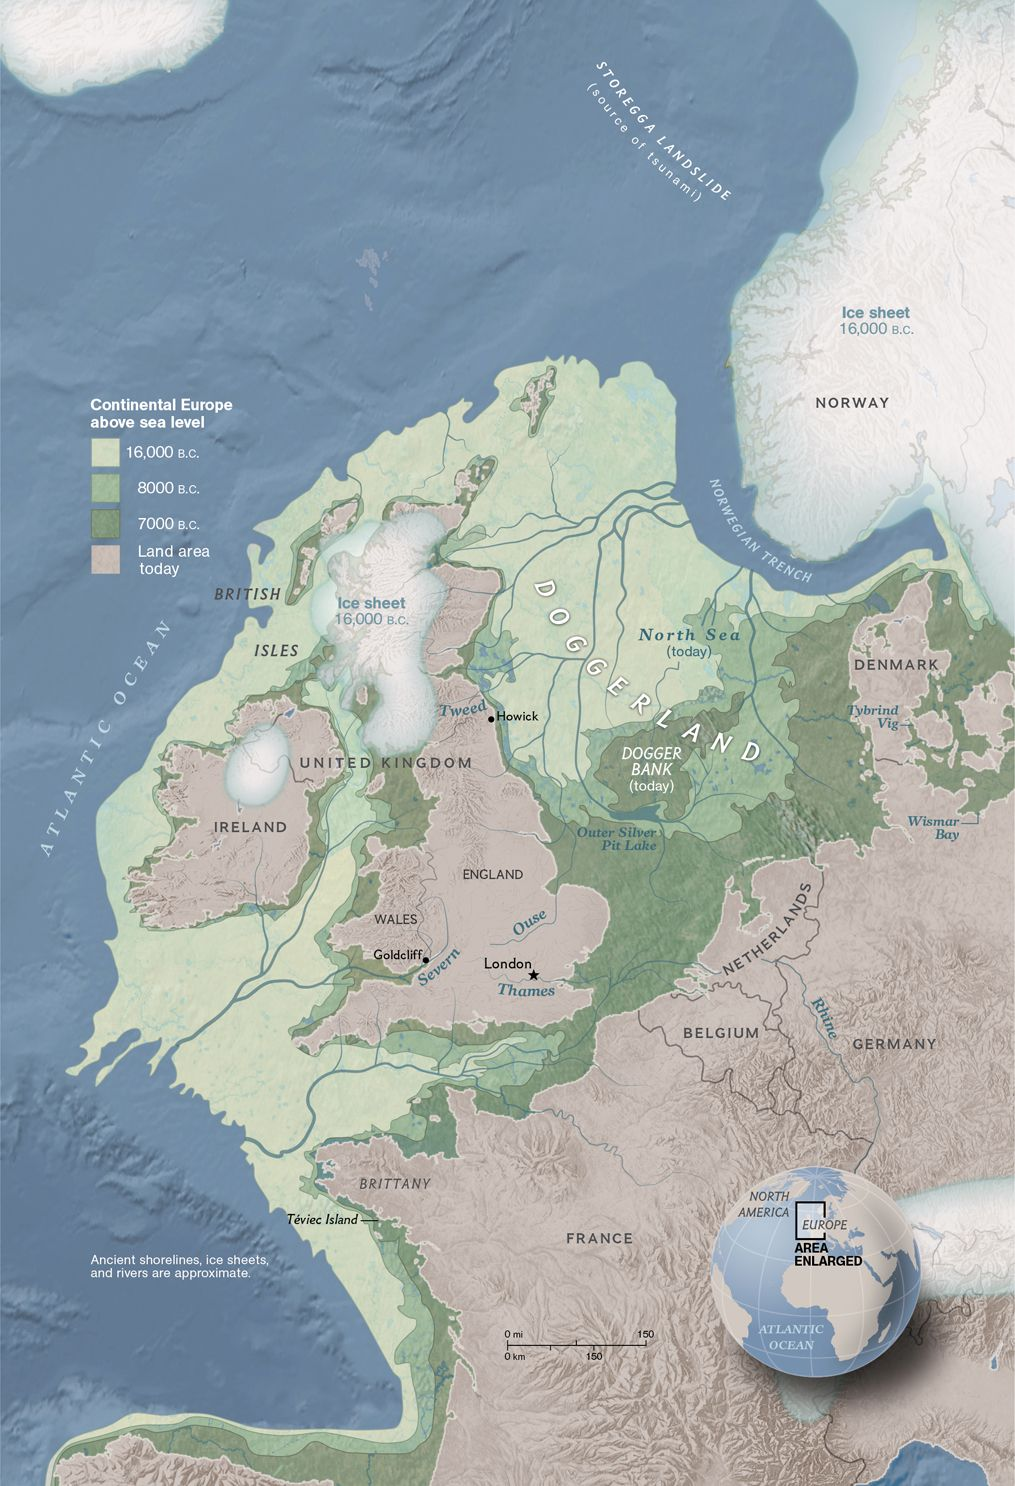 At the end of the last ice age, Britain formed the northwest corner of an icy continent. Warming climate exposed a vast continental shelf for humans to inhabit. Further warming and rising seas gradually flooded low-lying lands. Some 8,200 years ago, a catastrophic release of water from a North American glacial lake and a tsunami from a submarine landslide off Norway inundated whatever remained of Doggerland.